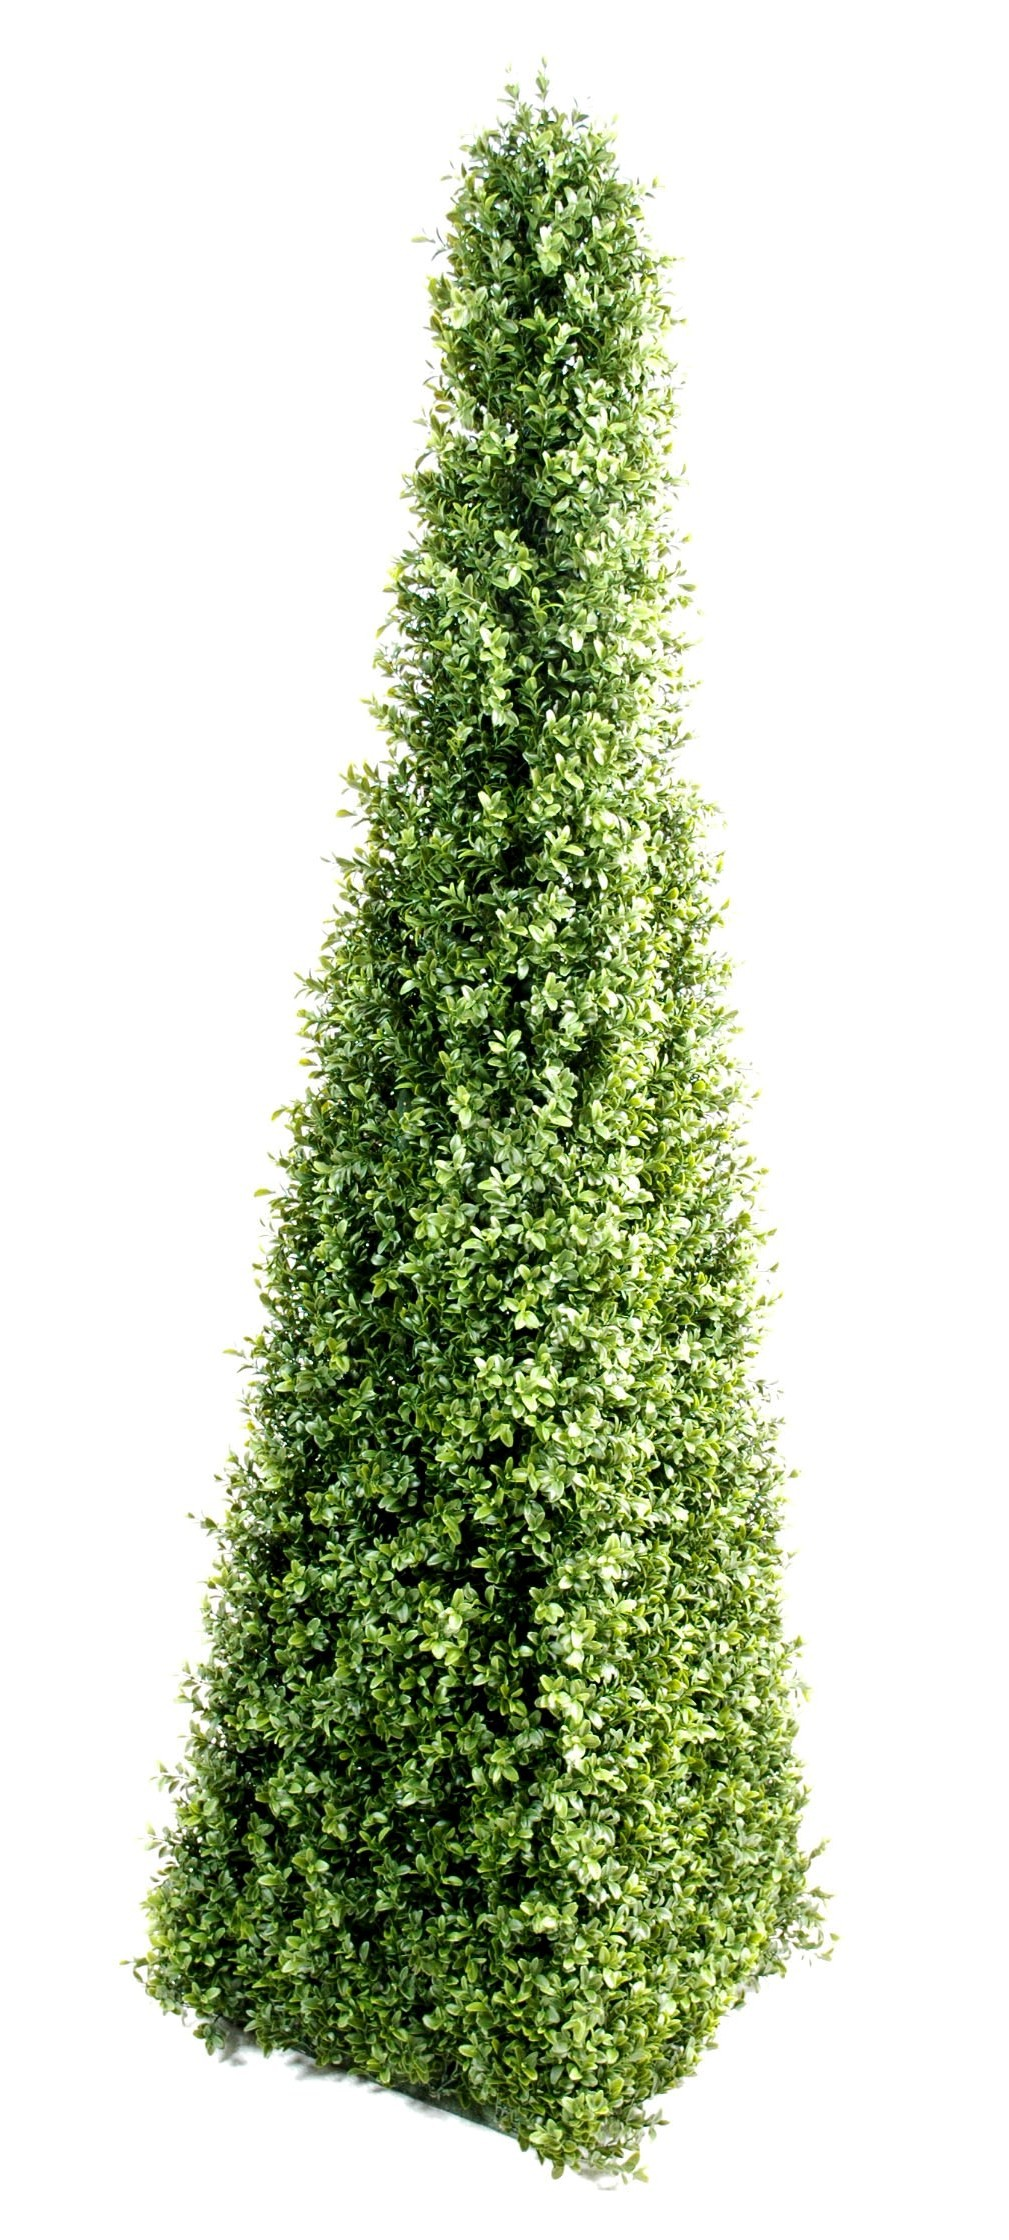 Buis artificiel pyramide 4 hauteur 160 cm 255 00 for Plante artificielle exterieure